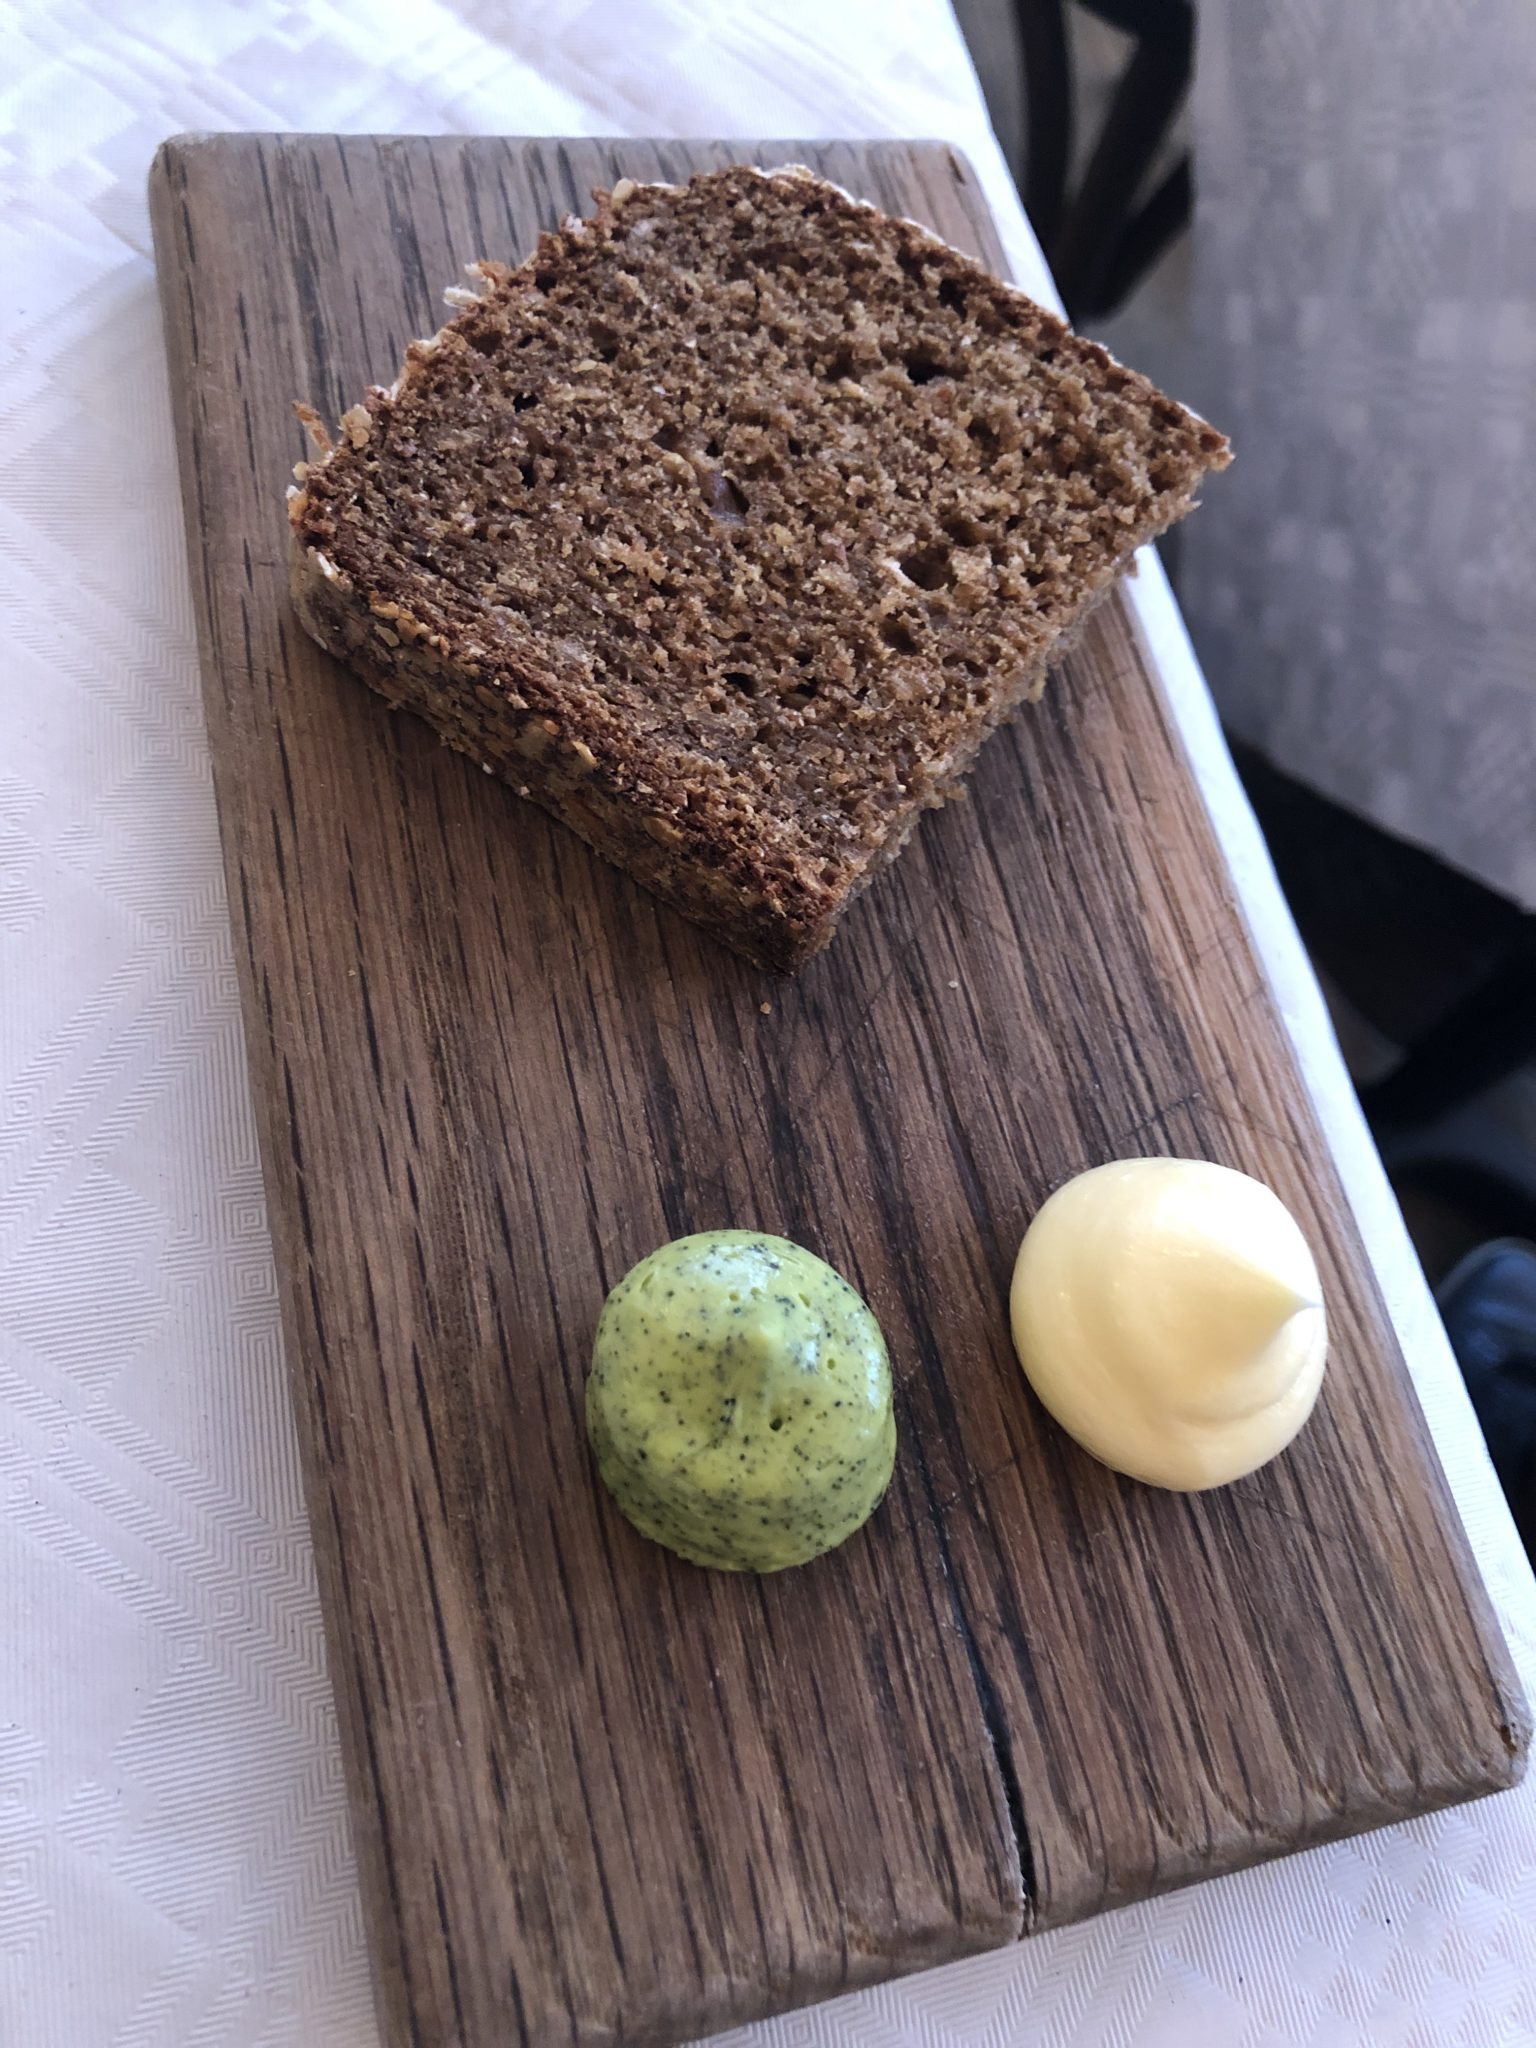 Soda bread with salted and seaweed butter.